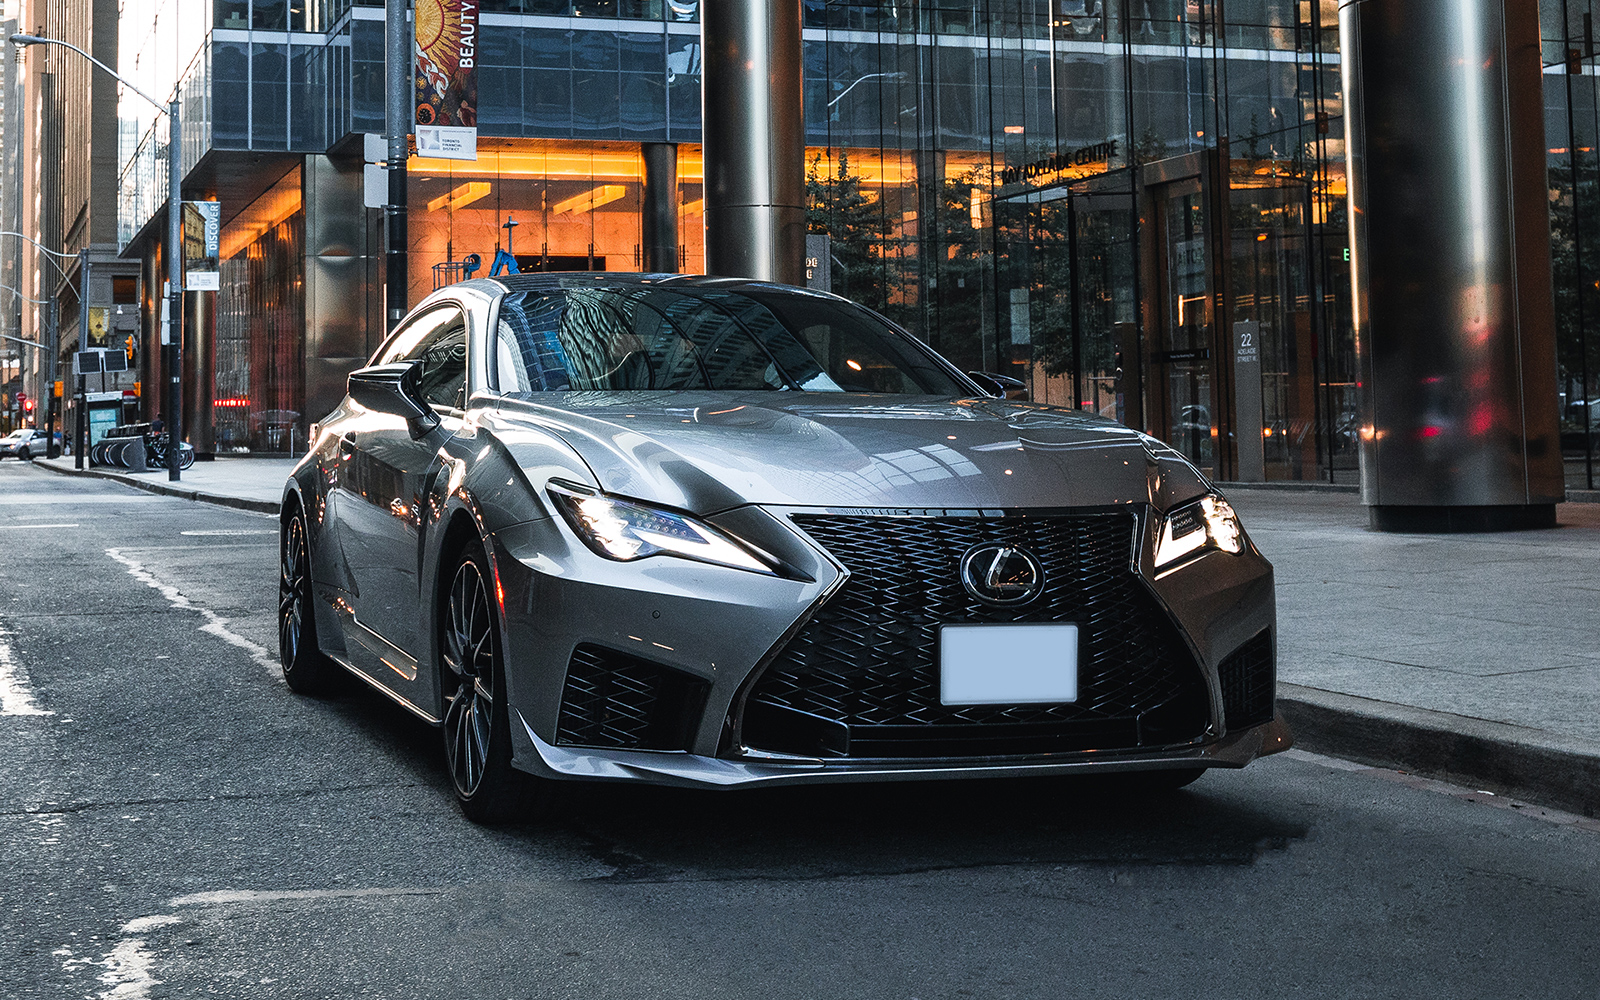 Lexus 2020 Rcf Atomic Silver Right 1 4 L